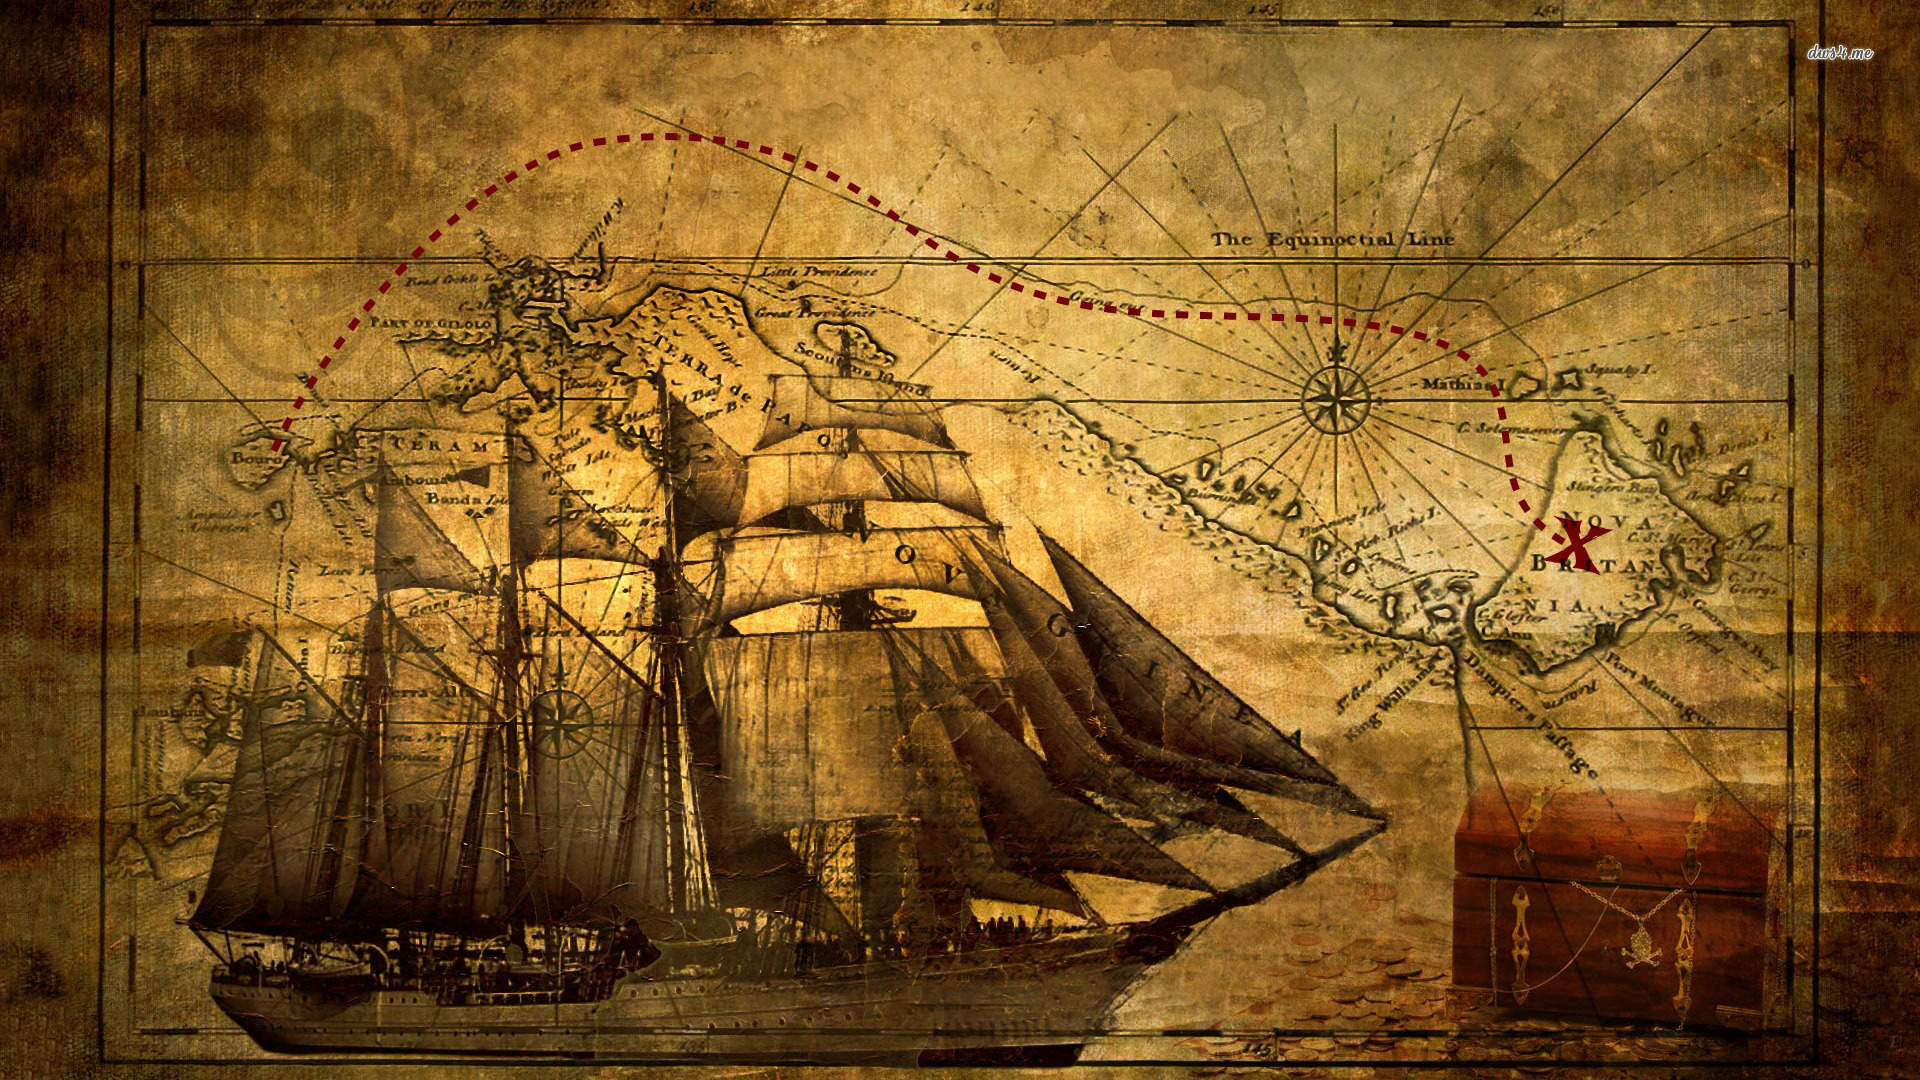 download Old ship with map wallpaper Digital Art wallpapers 1920x1080